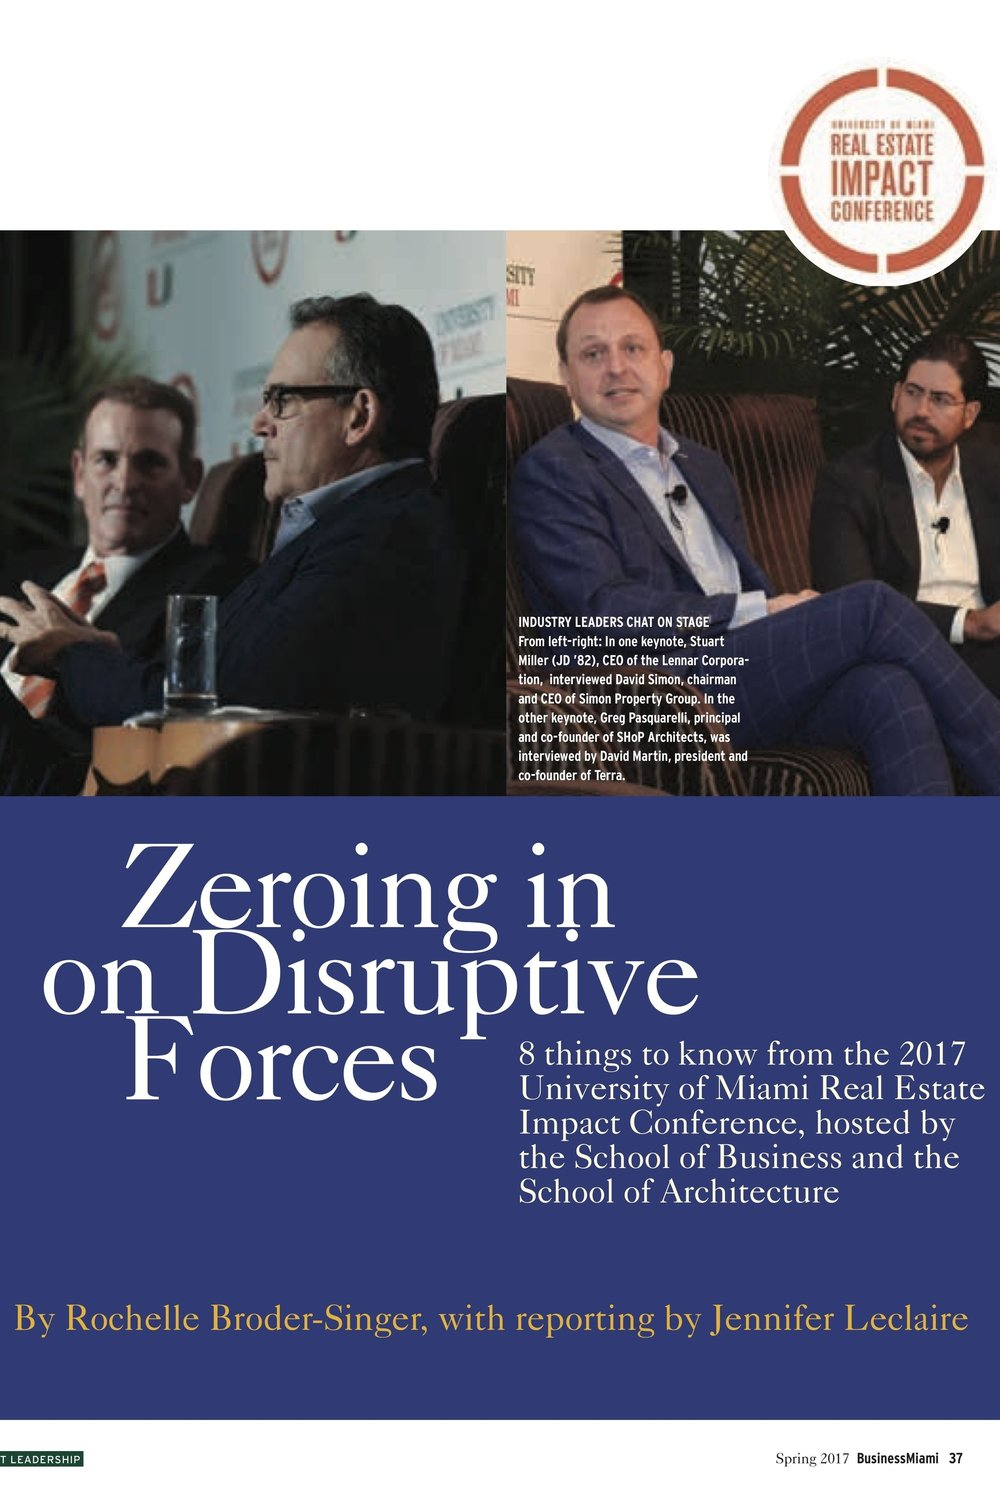 Real Estate Impact Conference 2017 - Keeping coverage of the annual conference fresh, with key points in print, plus full coverage online.